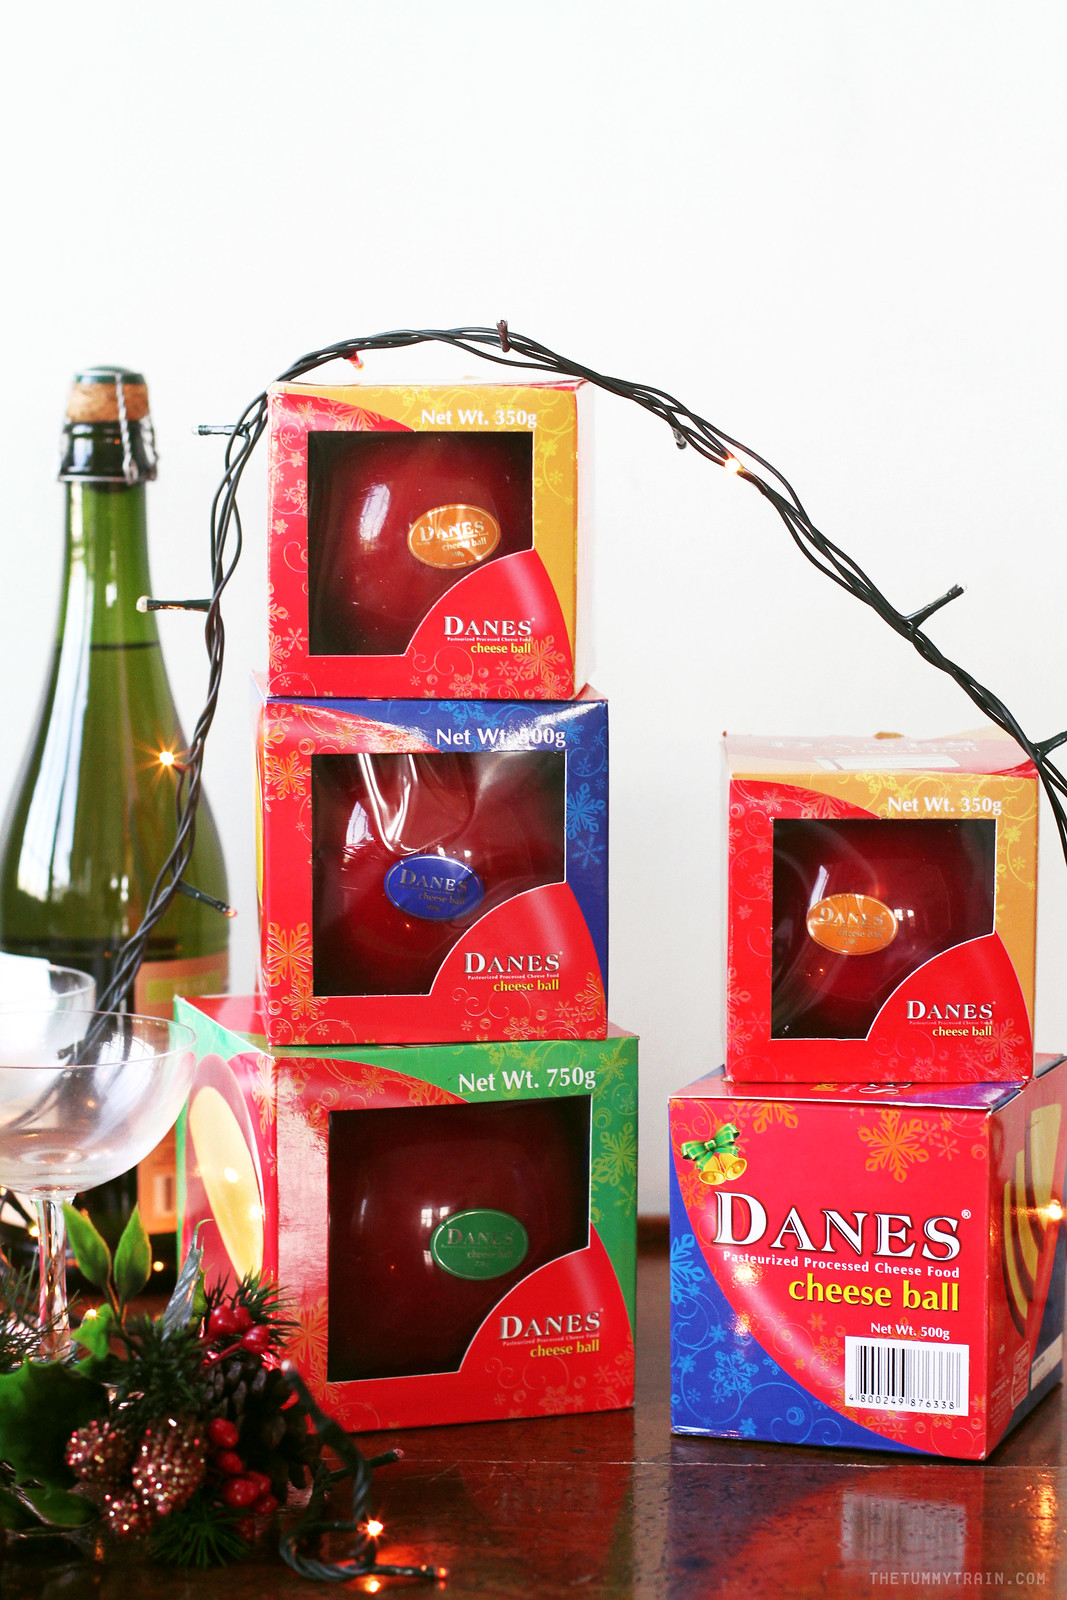 22906661959 797af82441 h - Have a sweet and savory Christmas with Danes Cheese Ball